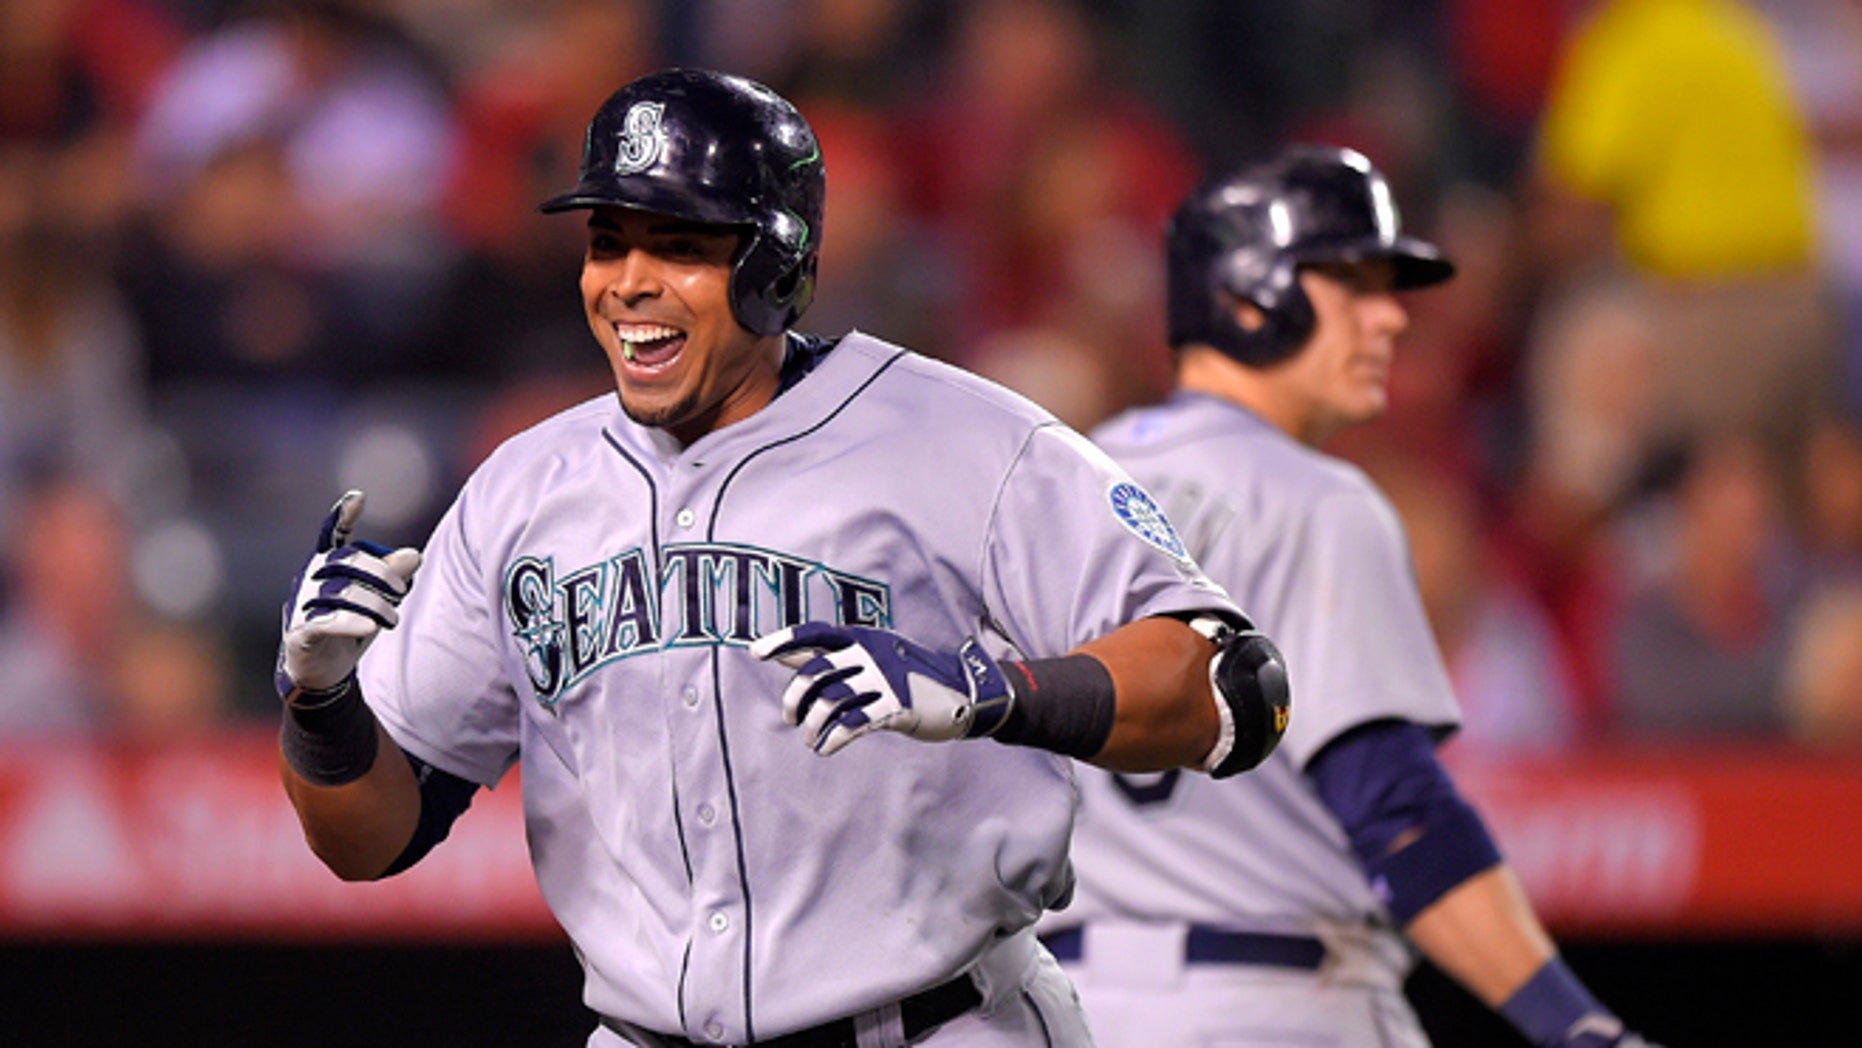 Seattle Mariners' Nelson Cruz, left, celebrates after hitting a solo home run against the Los Angeles Angels as Logan Morrison walks up to bat during the seventh inning of a baseball game, Monday, May 4, 2015, in Anaheim, Calif. Morrison also hit a solo home run in the inning. (AP Photo/Mark J. Terrill)